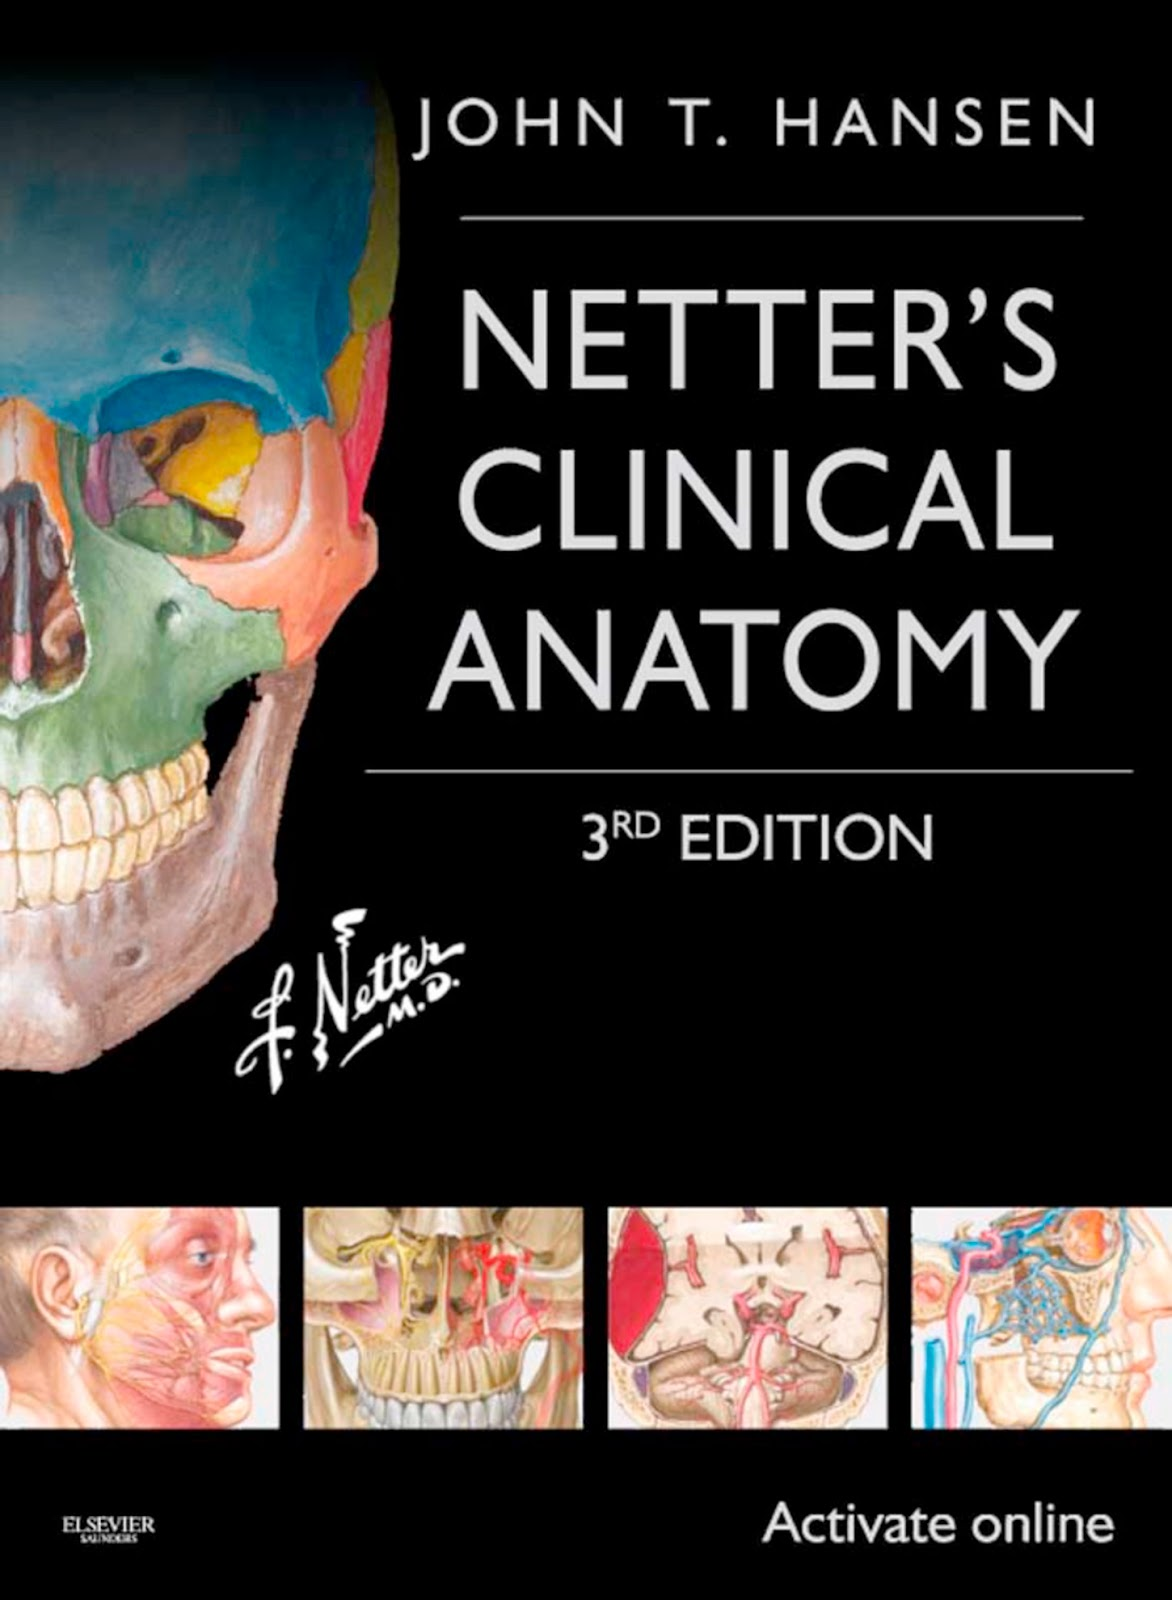 Free Download Program Netter Orthopedic Anatomy Pdf Human Crisejuice